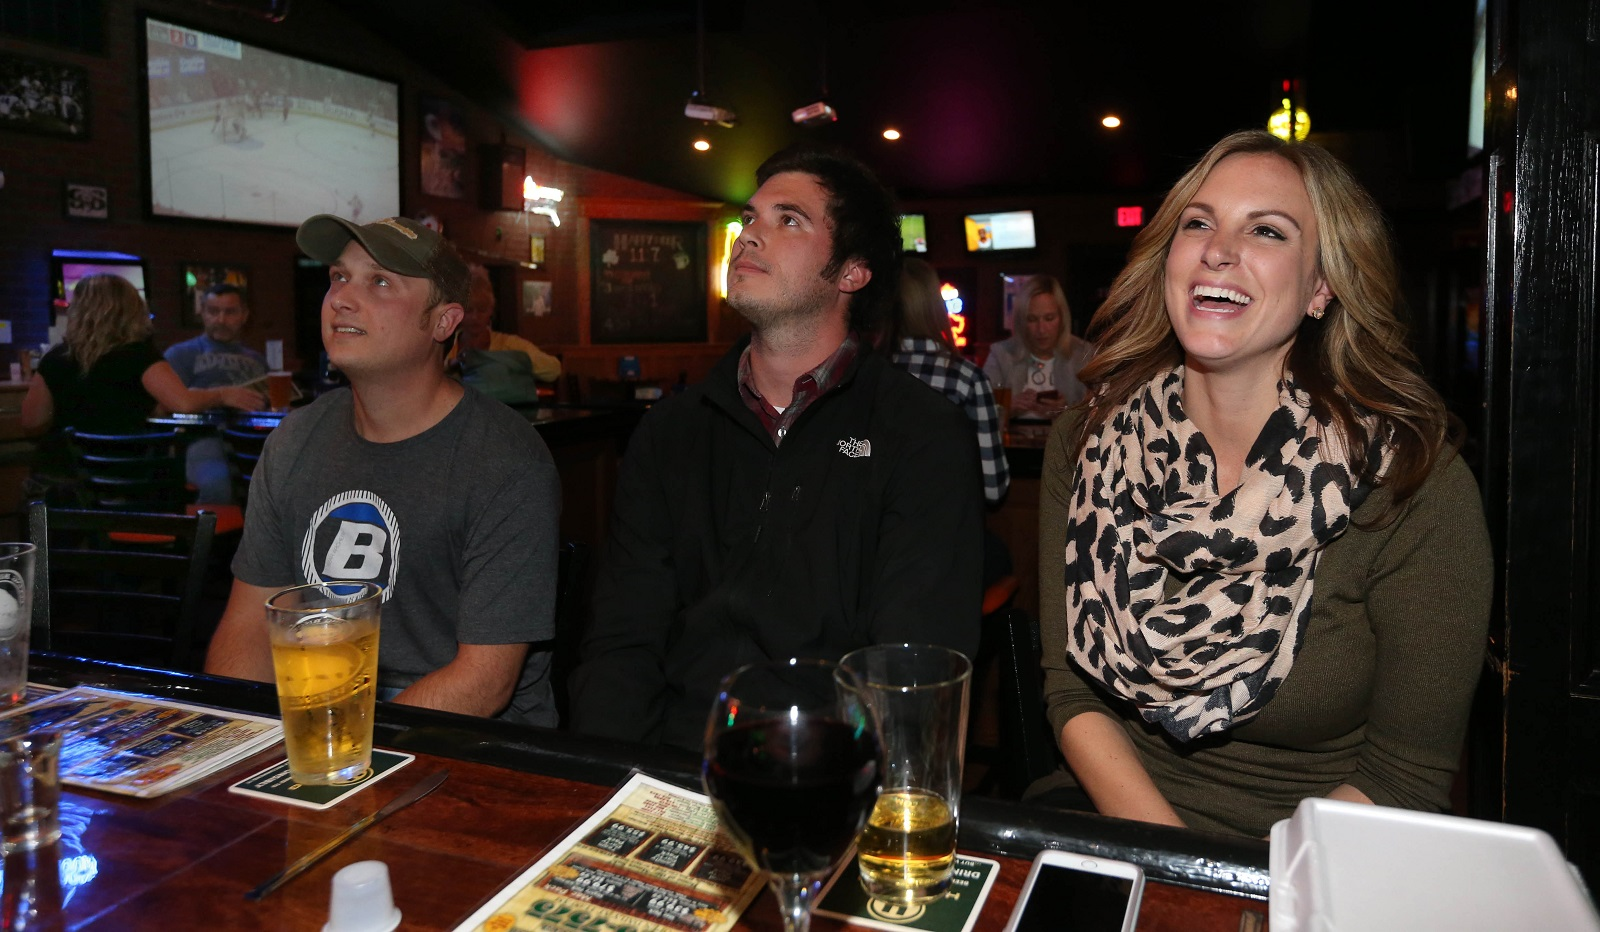 Watching the Sabres game in Mooney's, from left, are Jon Karcher of Depew, Kyle Krawczyk of West Seneca and Amanda Edel of West Seneca. (Sharon Cantillon/Buffalo News)